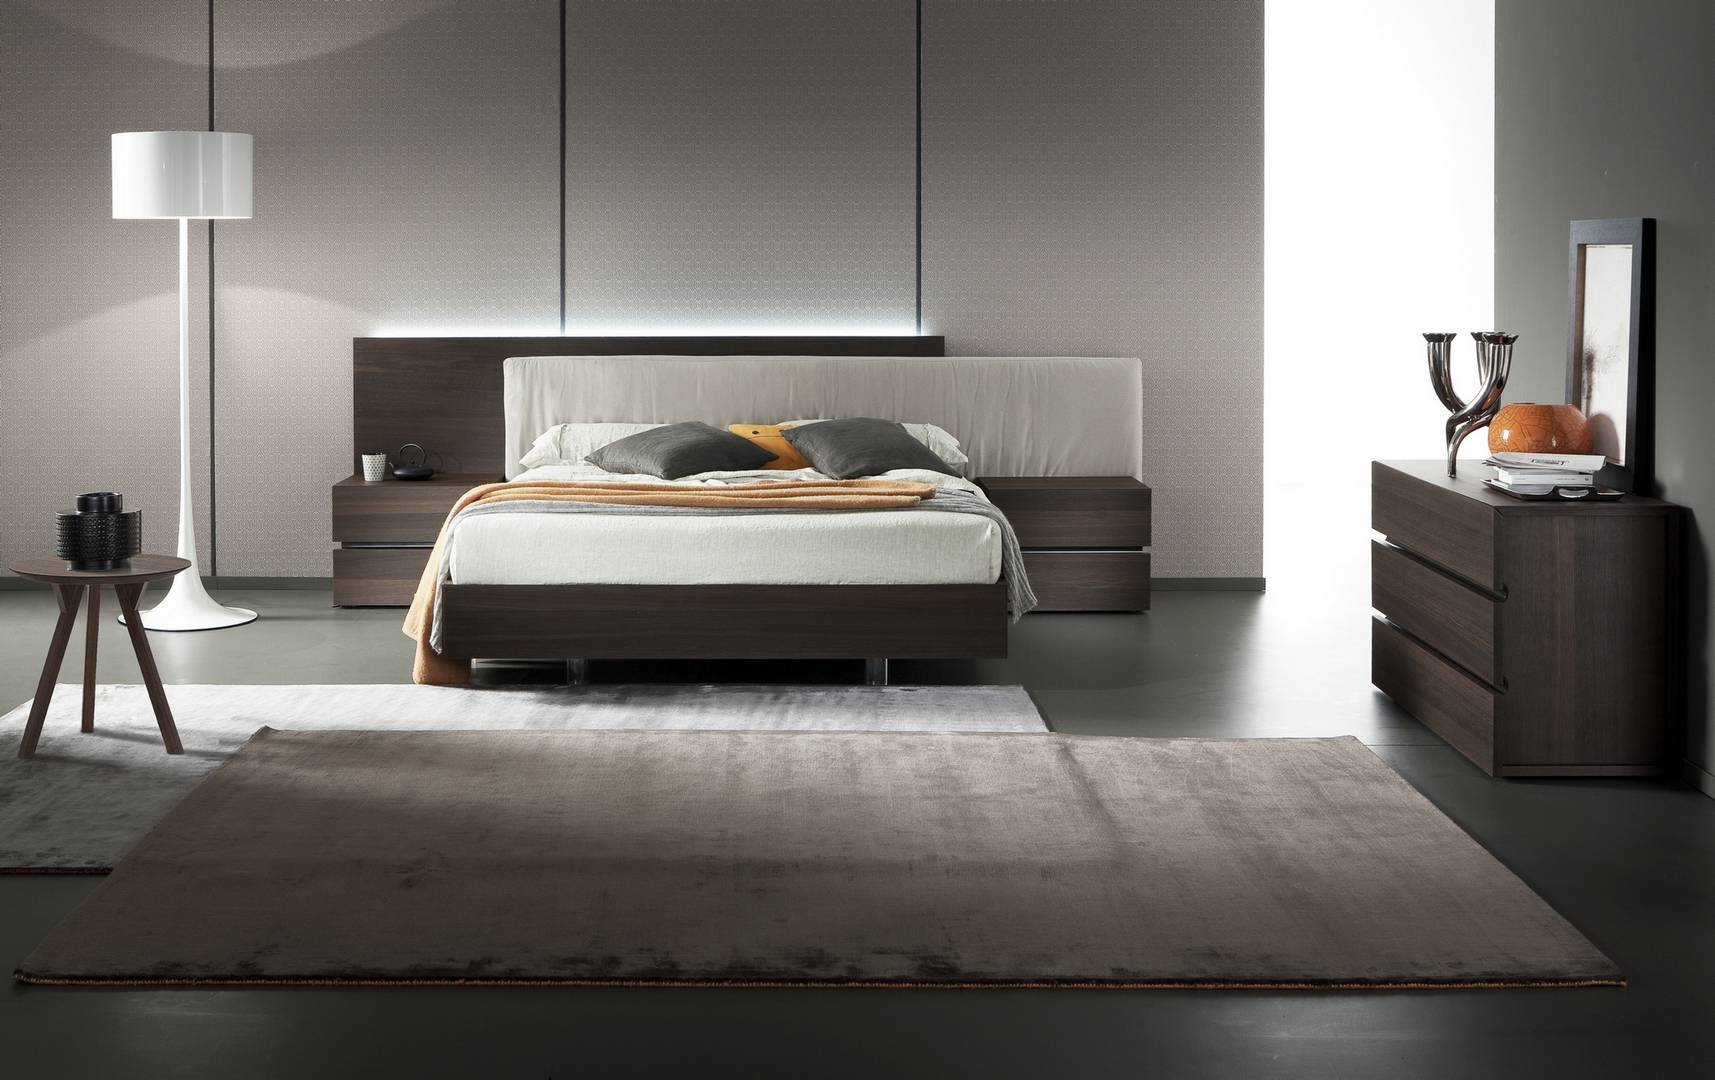 Prime Made In Italy Wood Modern Contemporary Bedroom Sets Home Interior And Landscaping Transignezvosmurscom